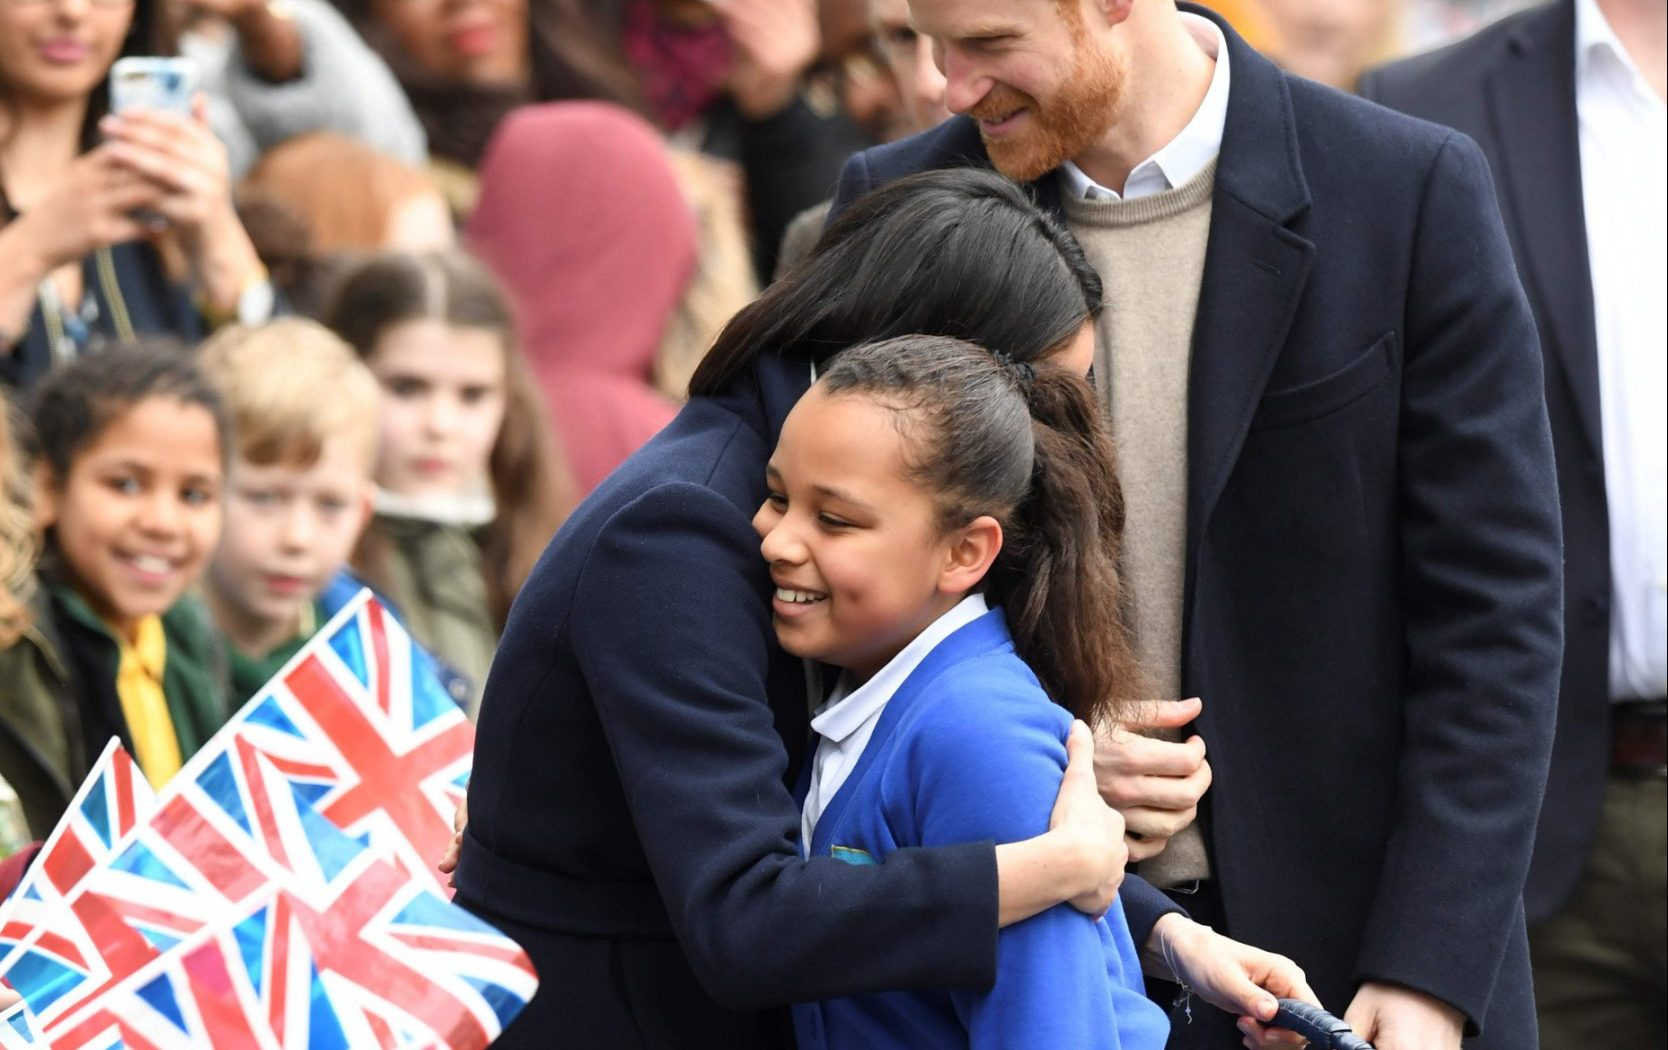 Britain's Prince Harry (C) and his fiancee US actress Meghan Markle (L) greet well-wishers as they arrive at Millennium Point to attend an event hosted by by social enterprise Stemettes to celebrate International Women's Day in Birmingham on March 8, 2018. Prince Harry and Meghan Markle visited Birmingham to learn more about the work of two projects which support young people from the local community. The event at Millennium Point aims to inspire the next generation of young women to pursue careers in Science, Technology, Engineering and Maths (STEM). / AFP PHOTO / Paul ELLISPAUL ELLIS/AFP/Getty Images